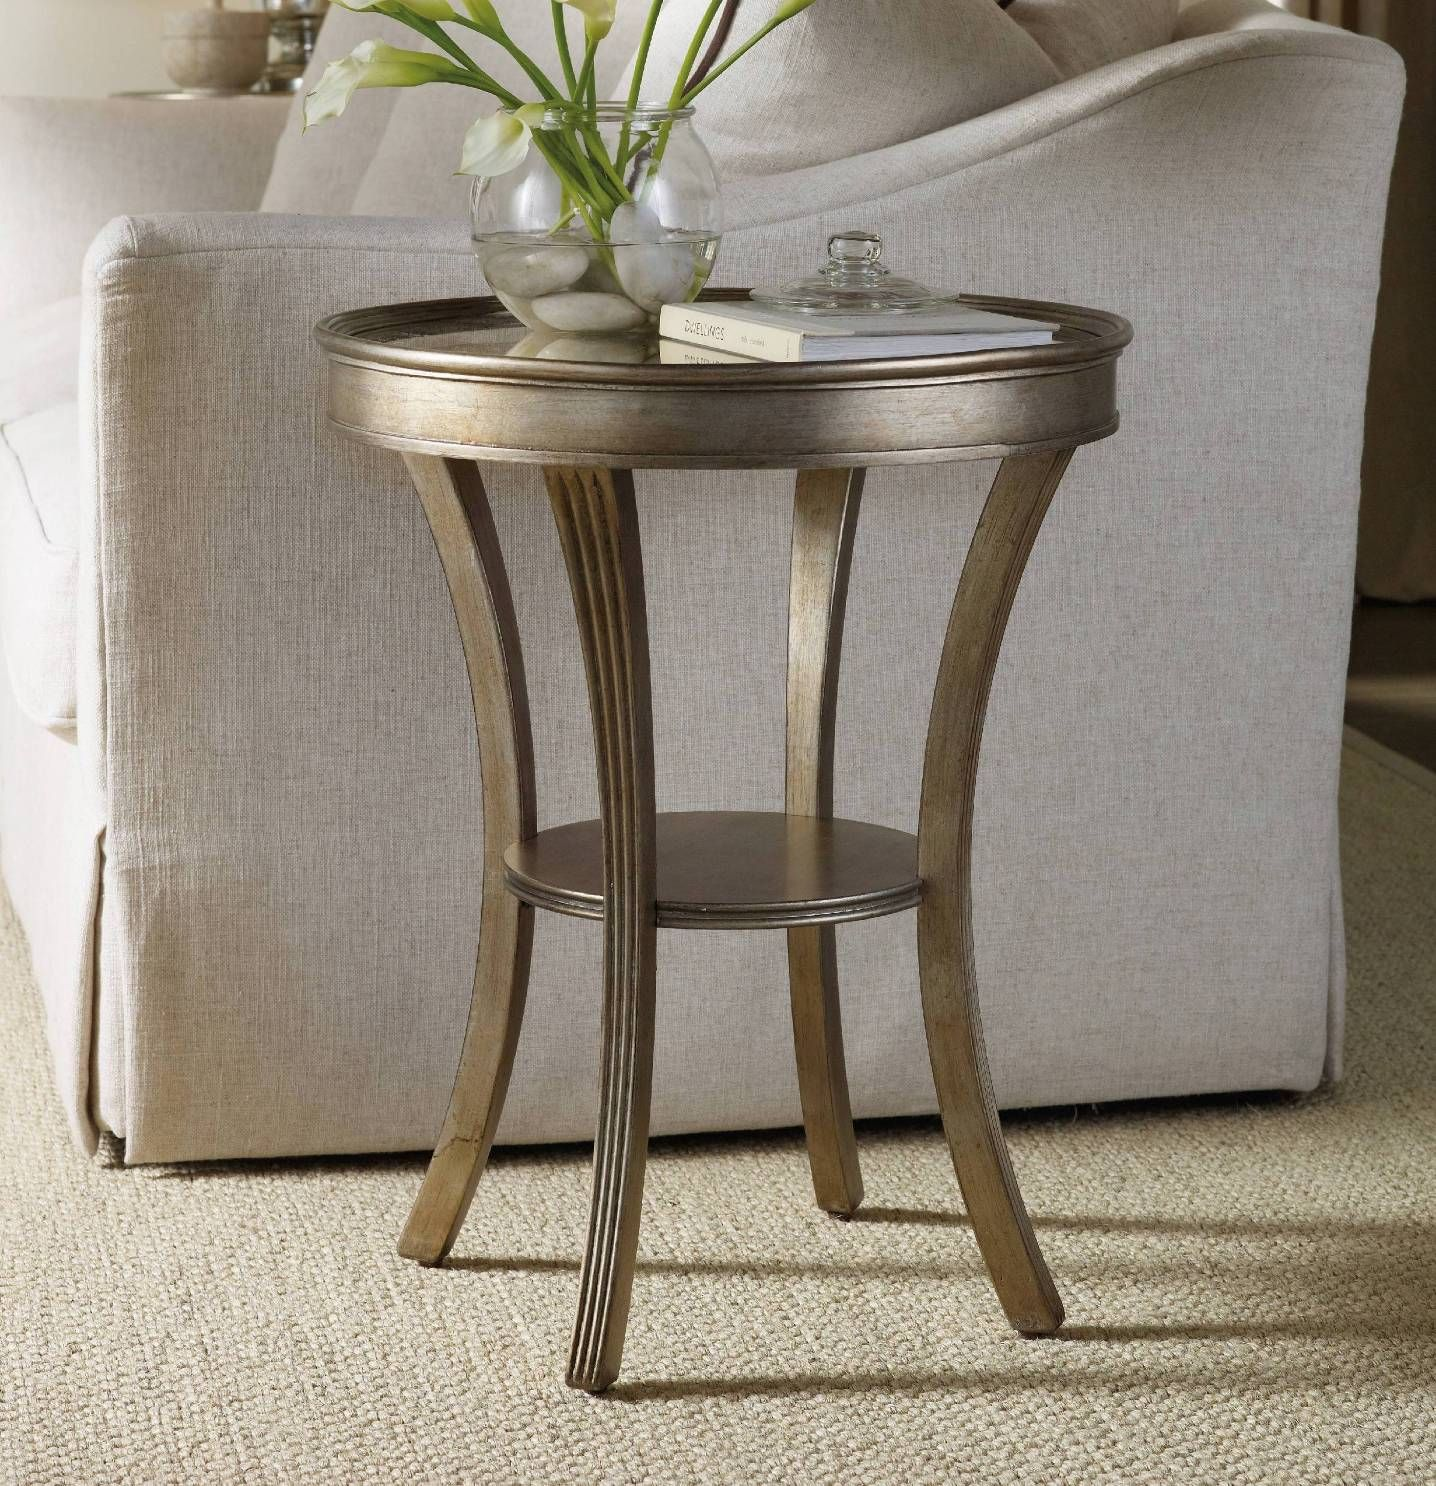 alluring white small accent table painting round for living end threshold ideas and outdoor wall pedestal gold tables target room ott corner lighting whitewash kijiji off full